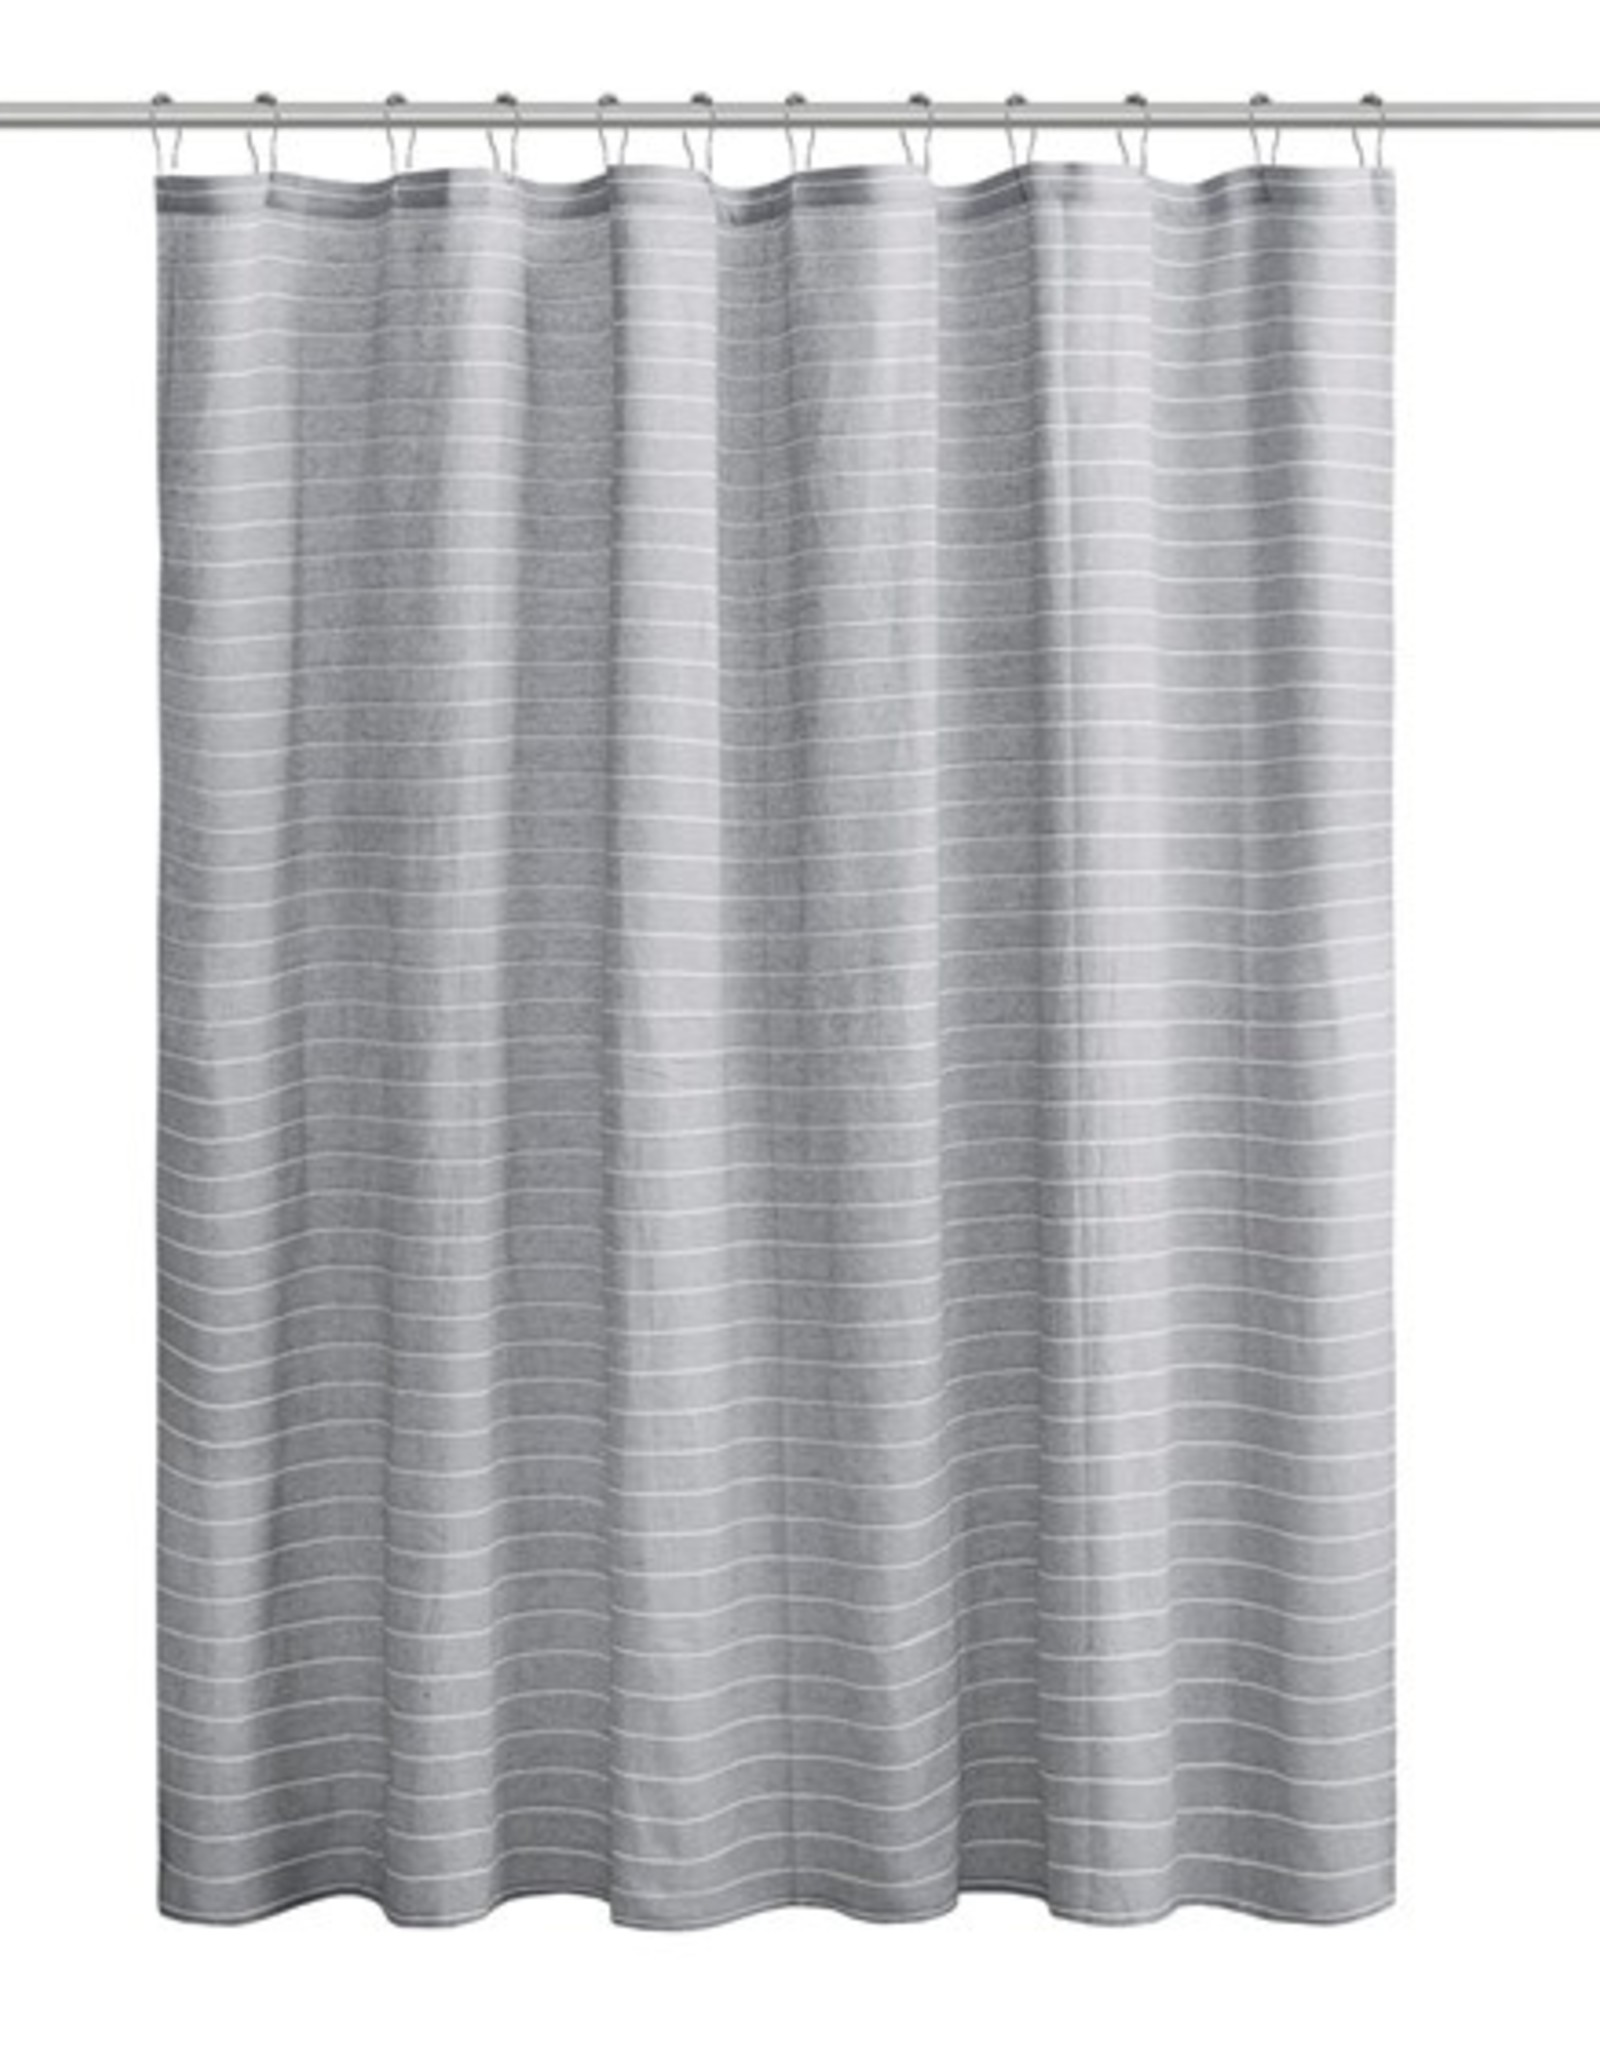 Ollixx Shower Curtain - Striped recycled fabrics